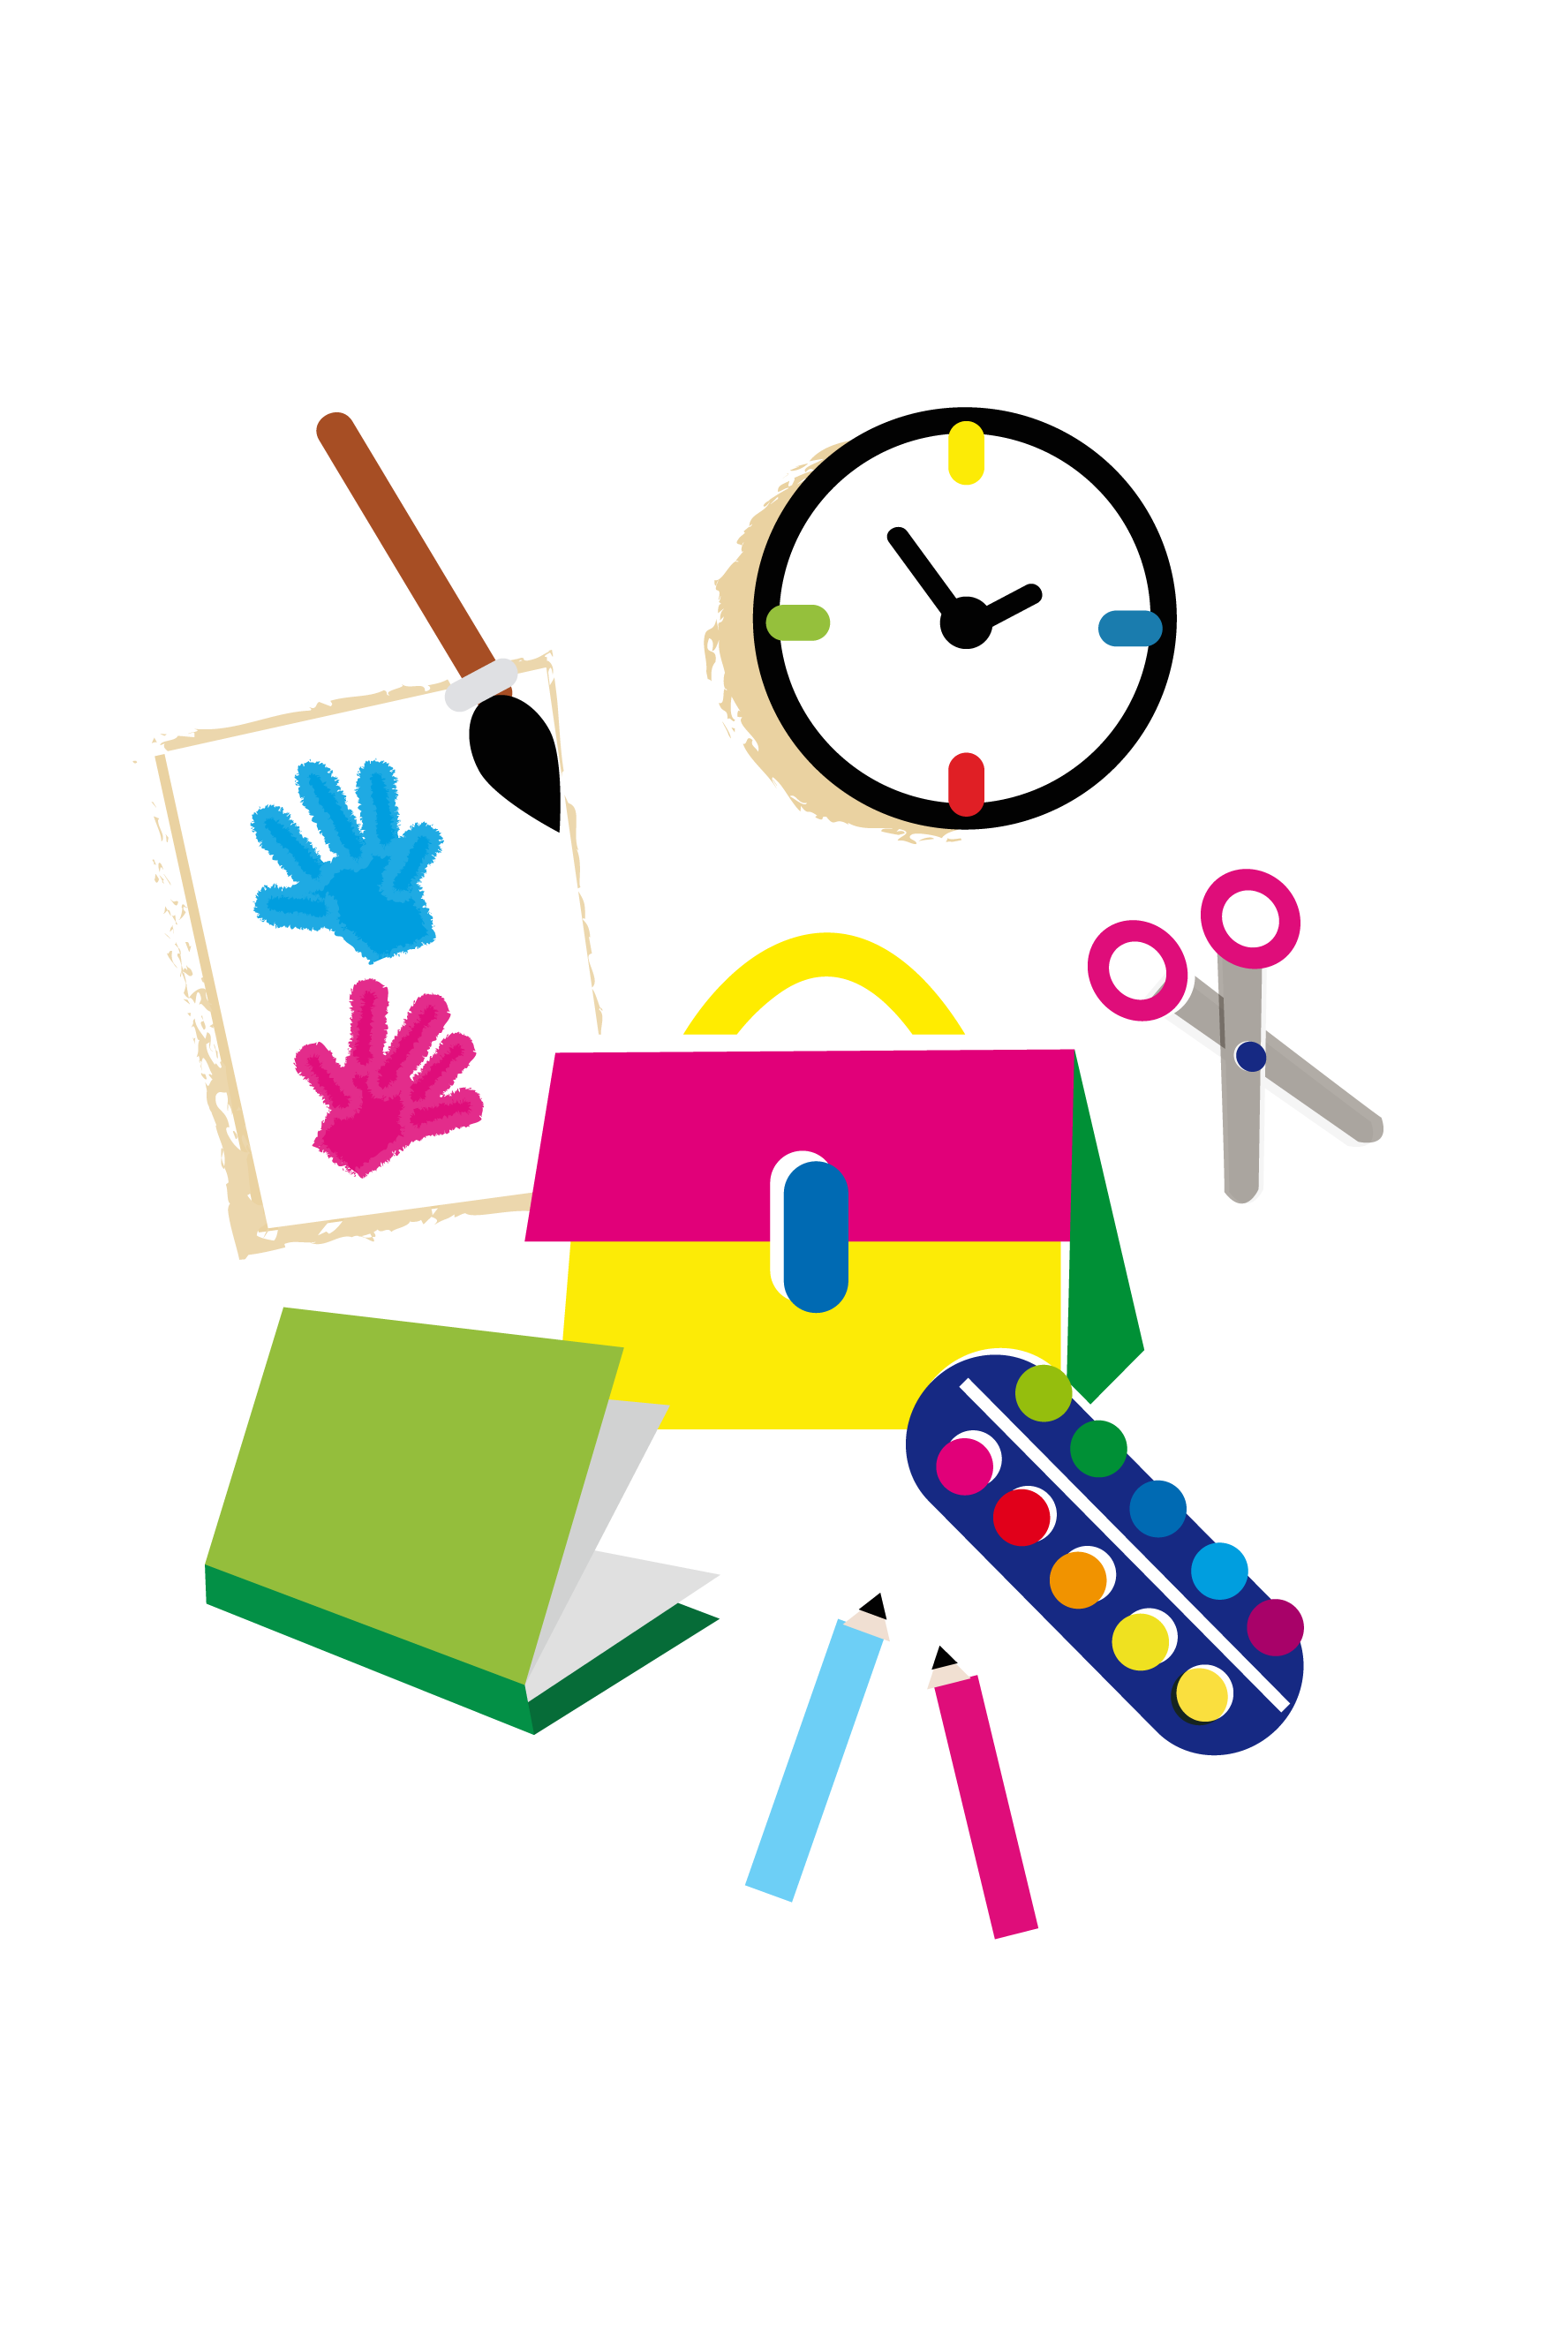 School supplies - Vector Illustration © Emeline Barrea, All rights reserved